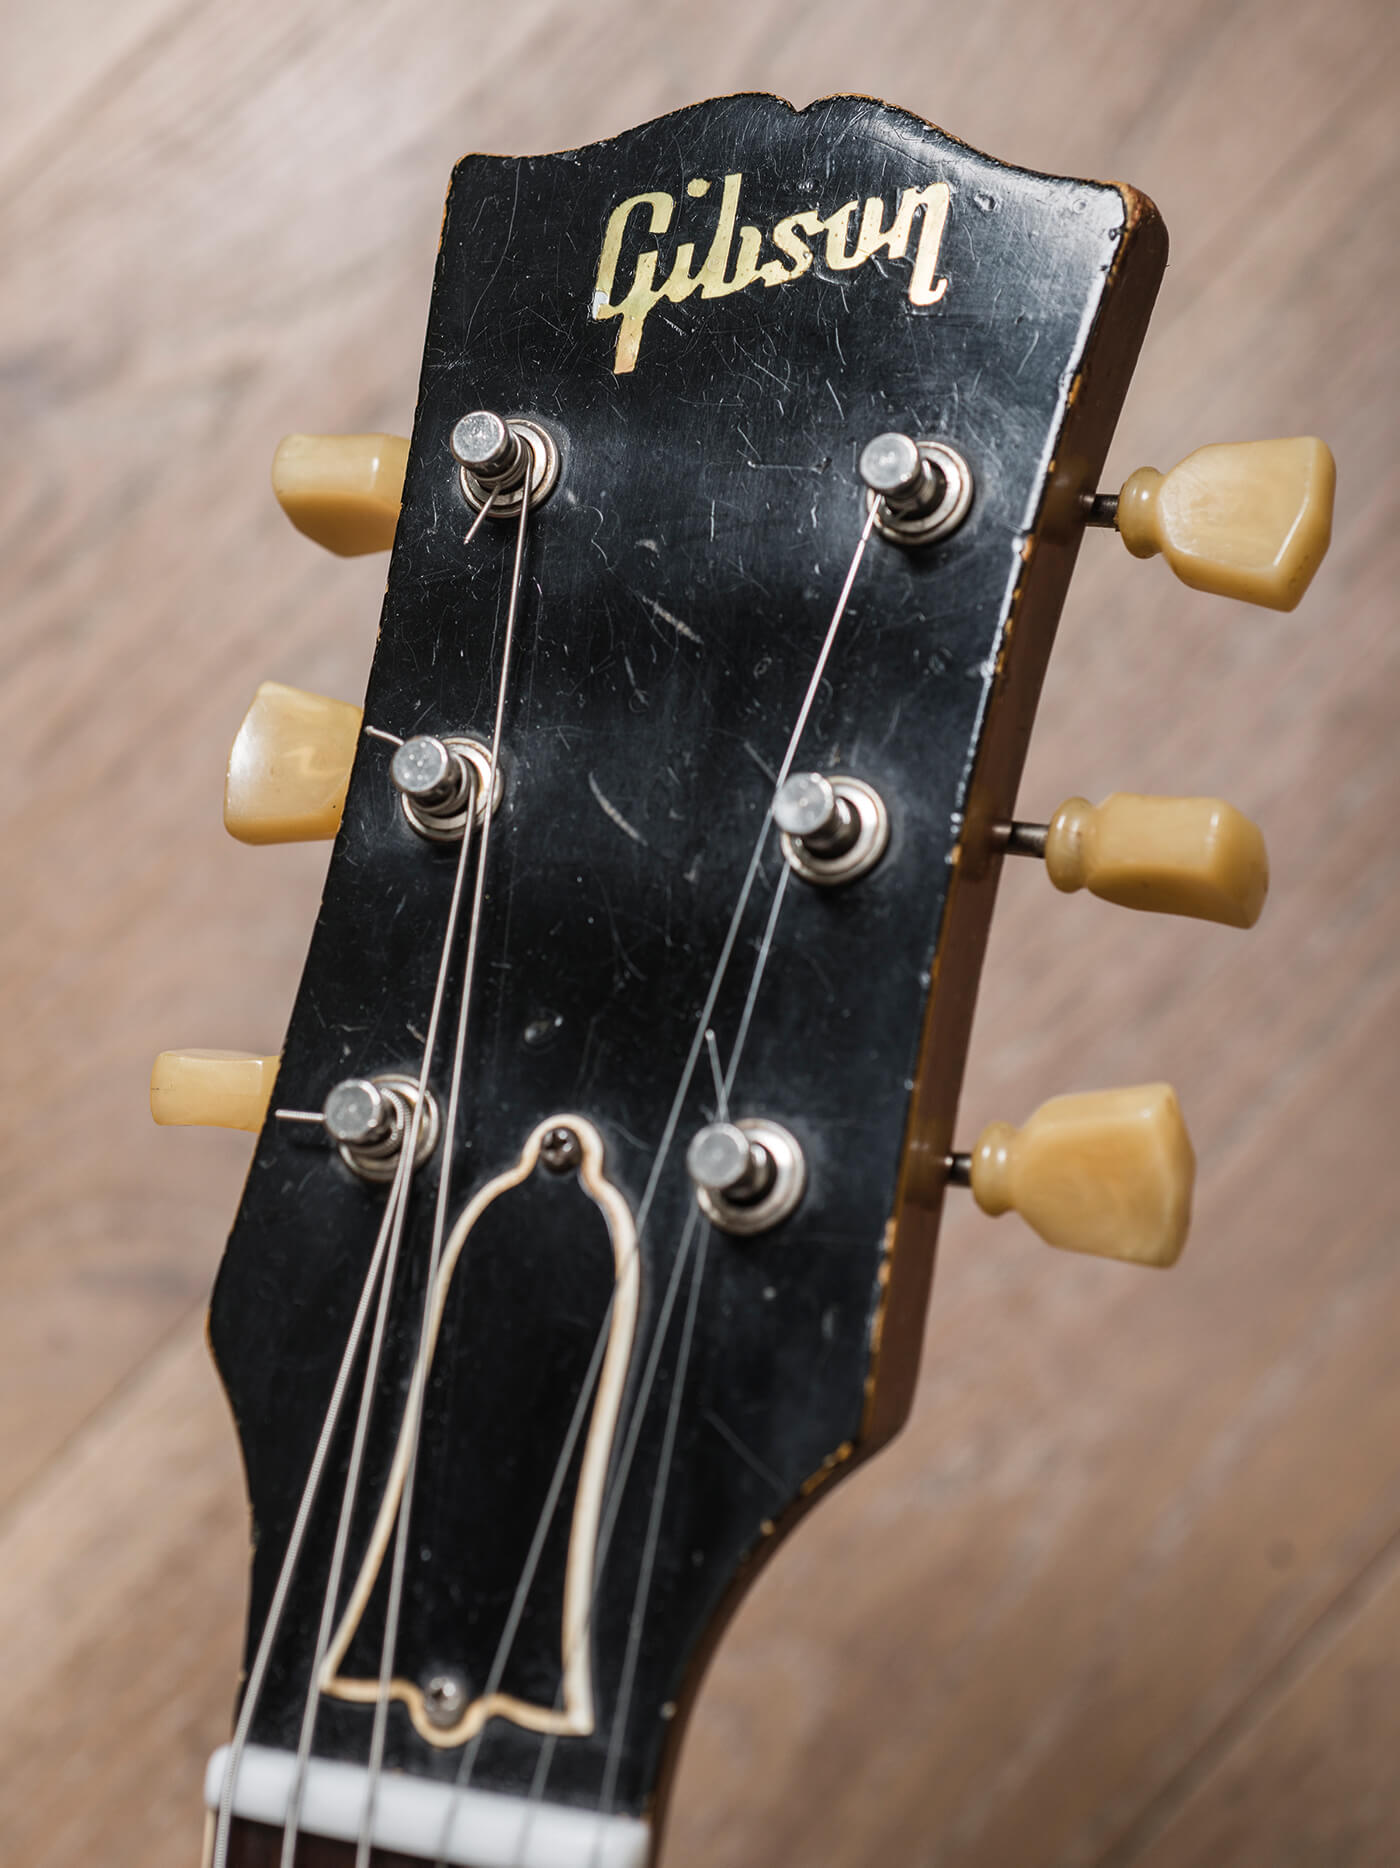 Cosmo Collection Les Paul headstock